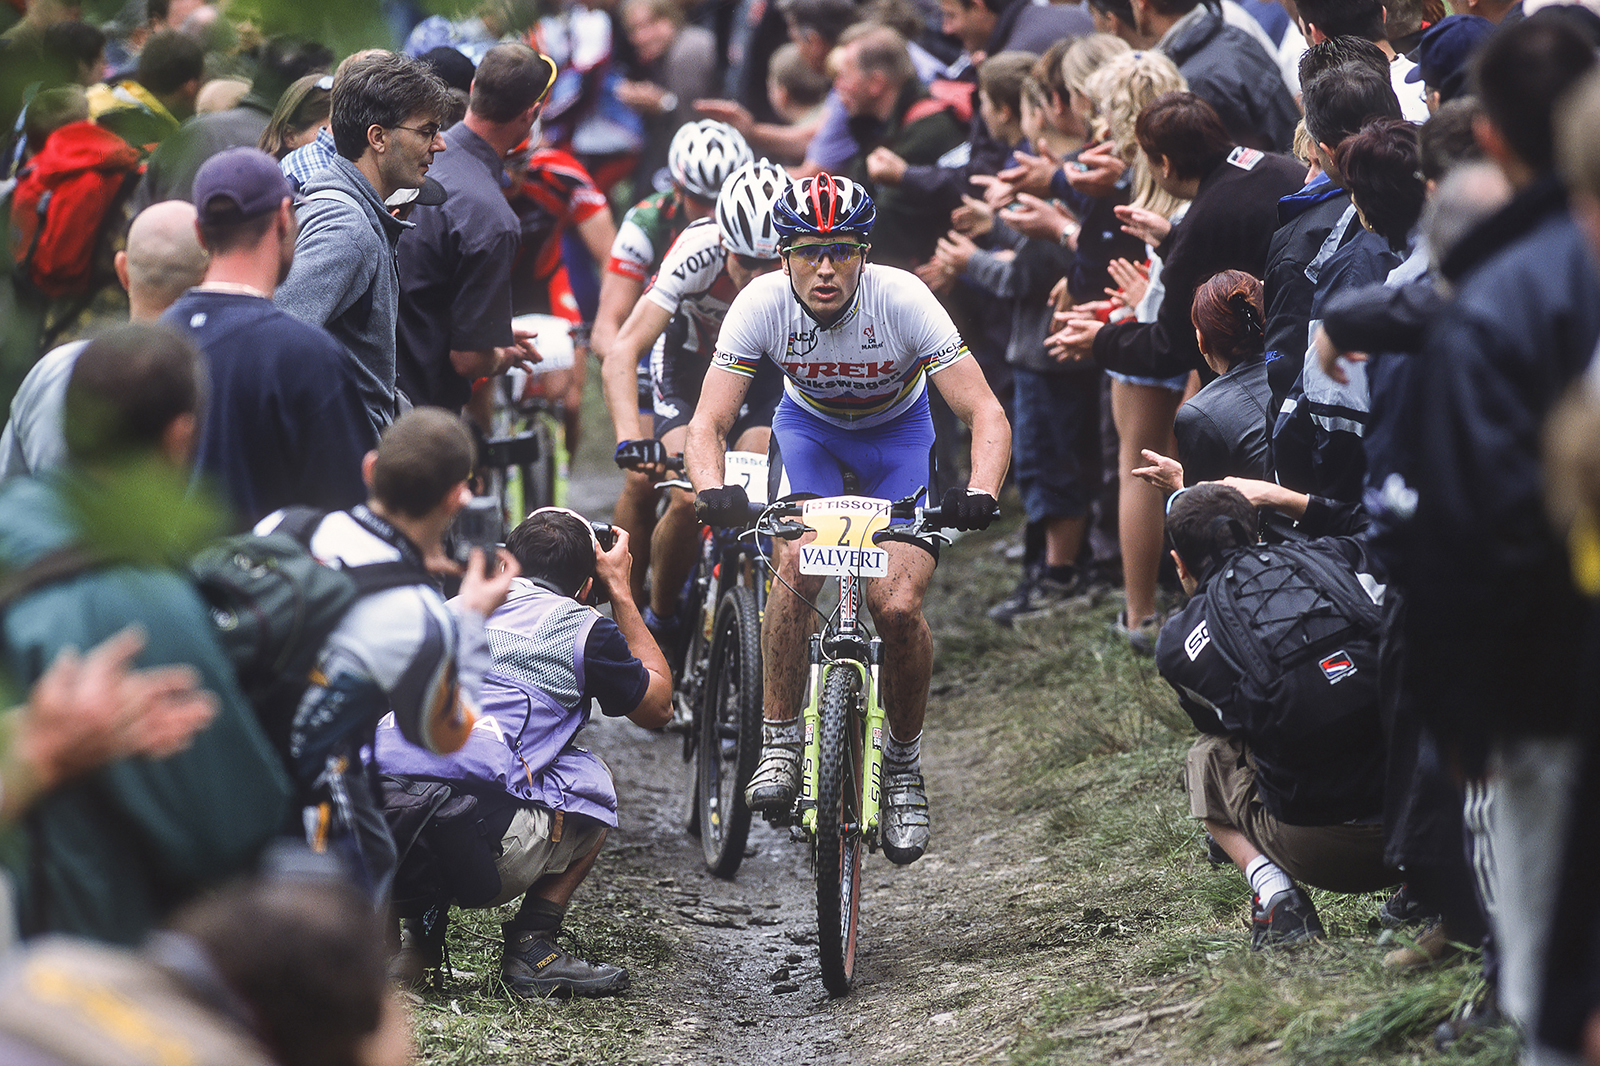 Roland Green leads Christoph Sauser at the 2002 World Cup race in Houffalize, Belgium. Photo: Malcom Fearon/Bliss Images.